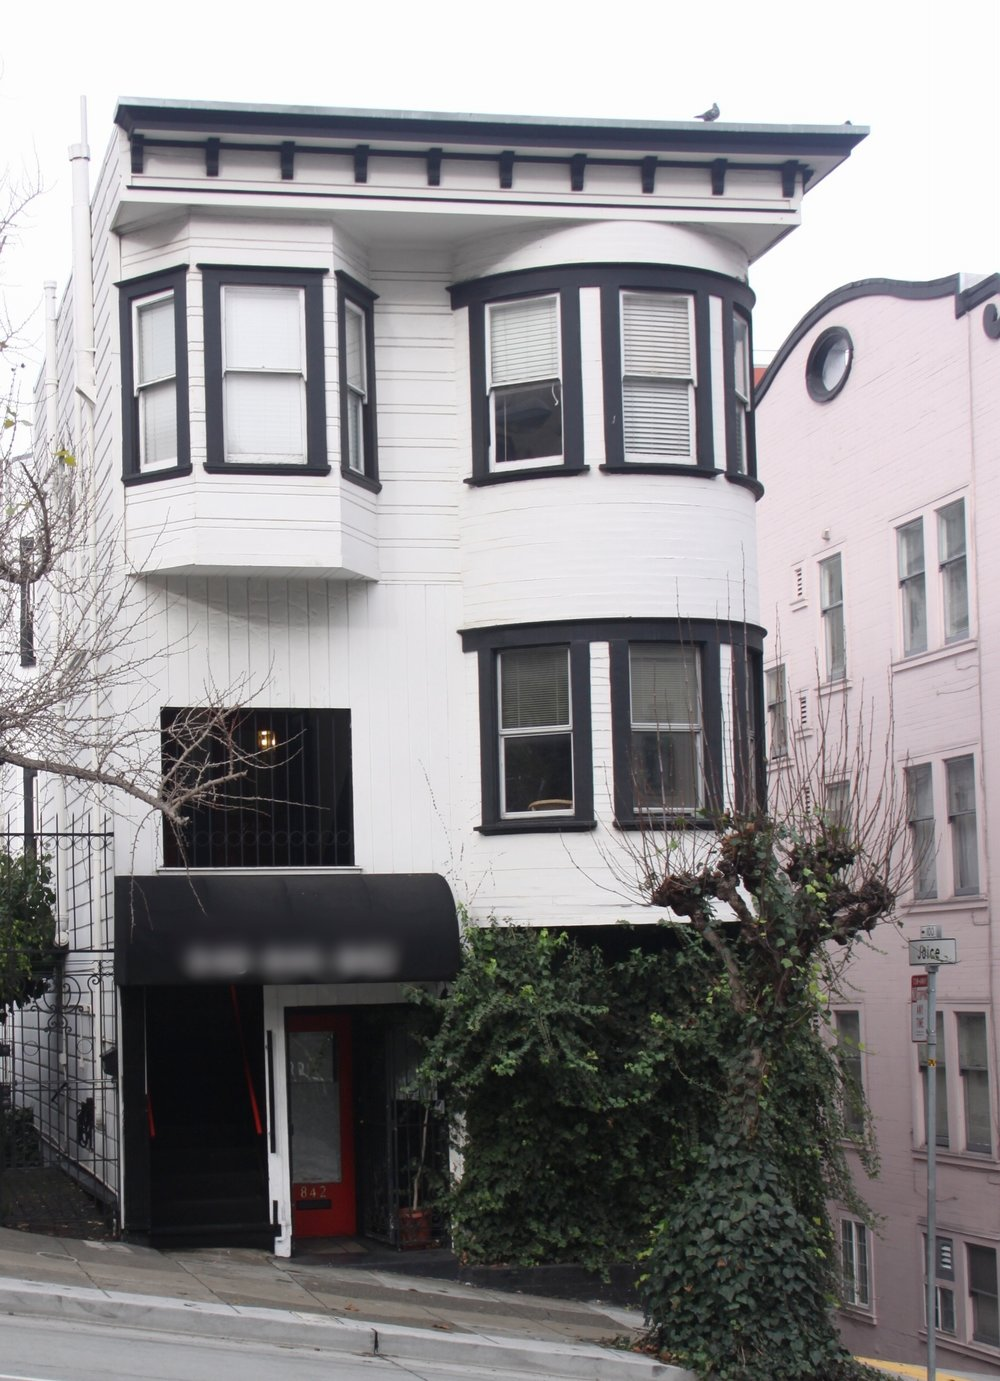 Nob Hill Couples & Sex Therapy Office Locations - All of our San Francisco Couples Counseling and Sex Therapy offices are decorated to create a warm, professional and inviting atmosphere.